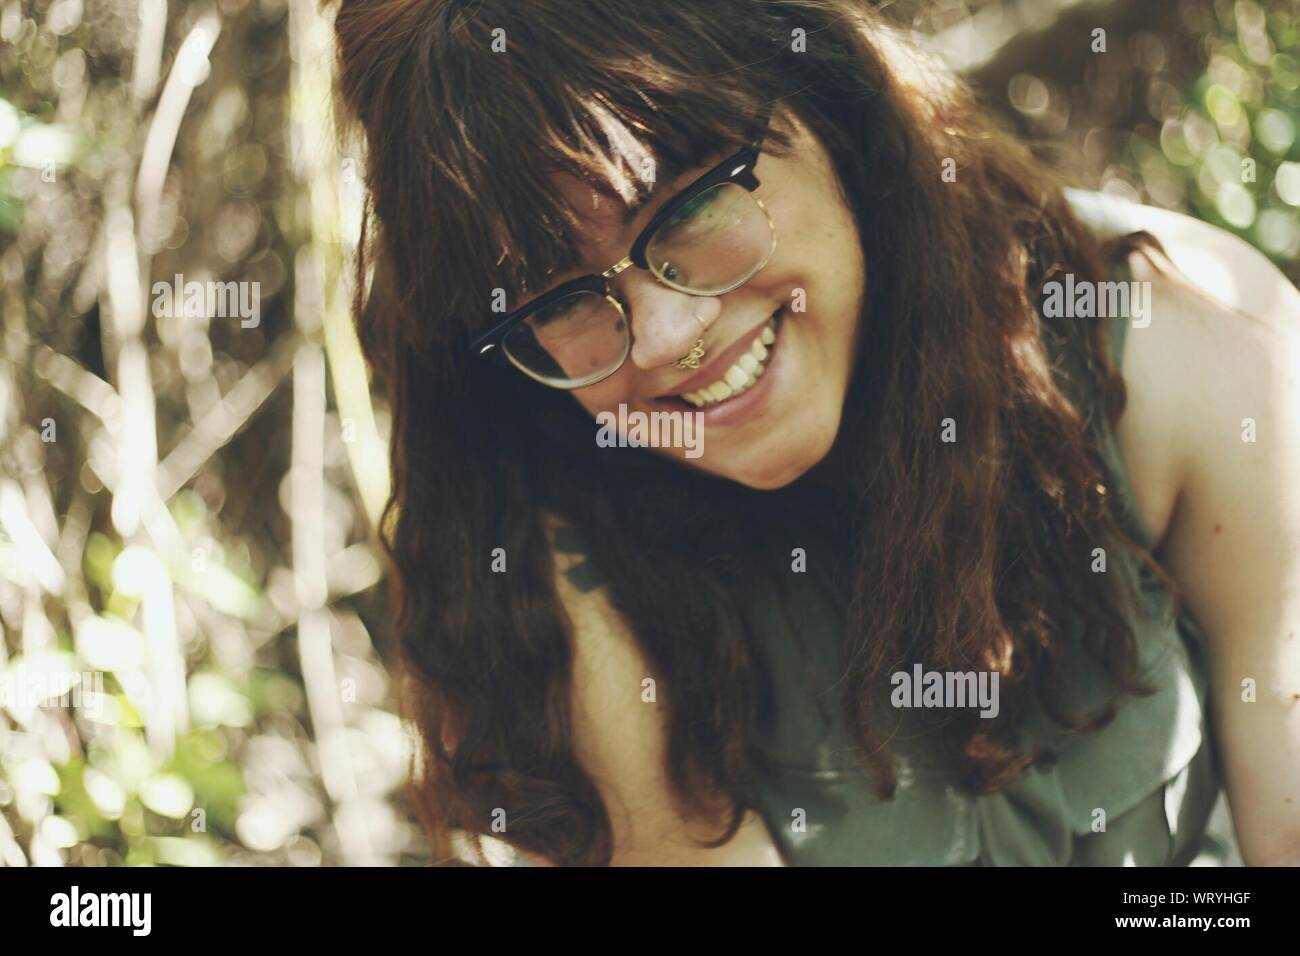 Close-up Portrait Of Smiling Young Woman Stock Photo